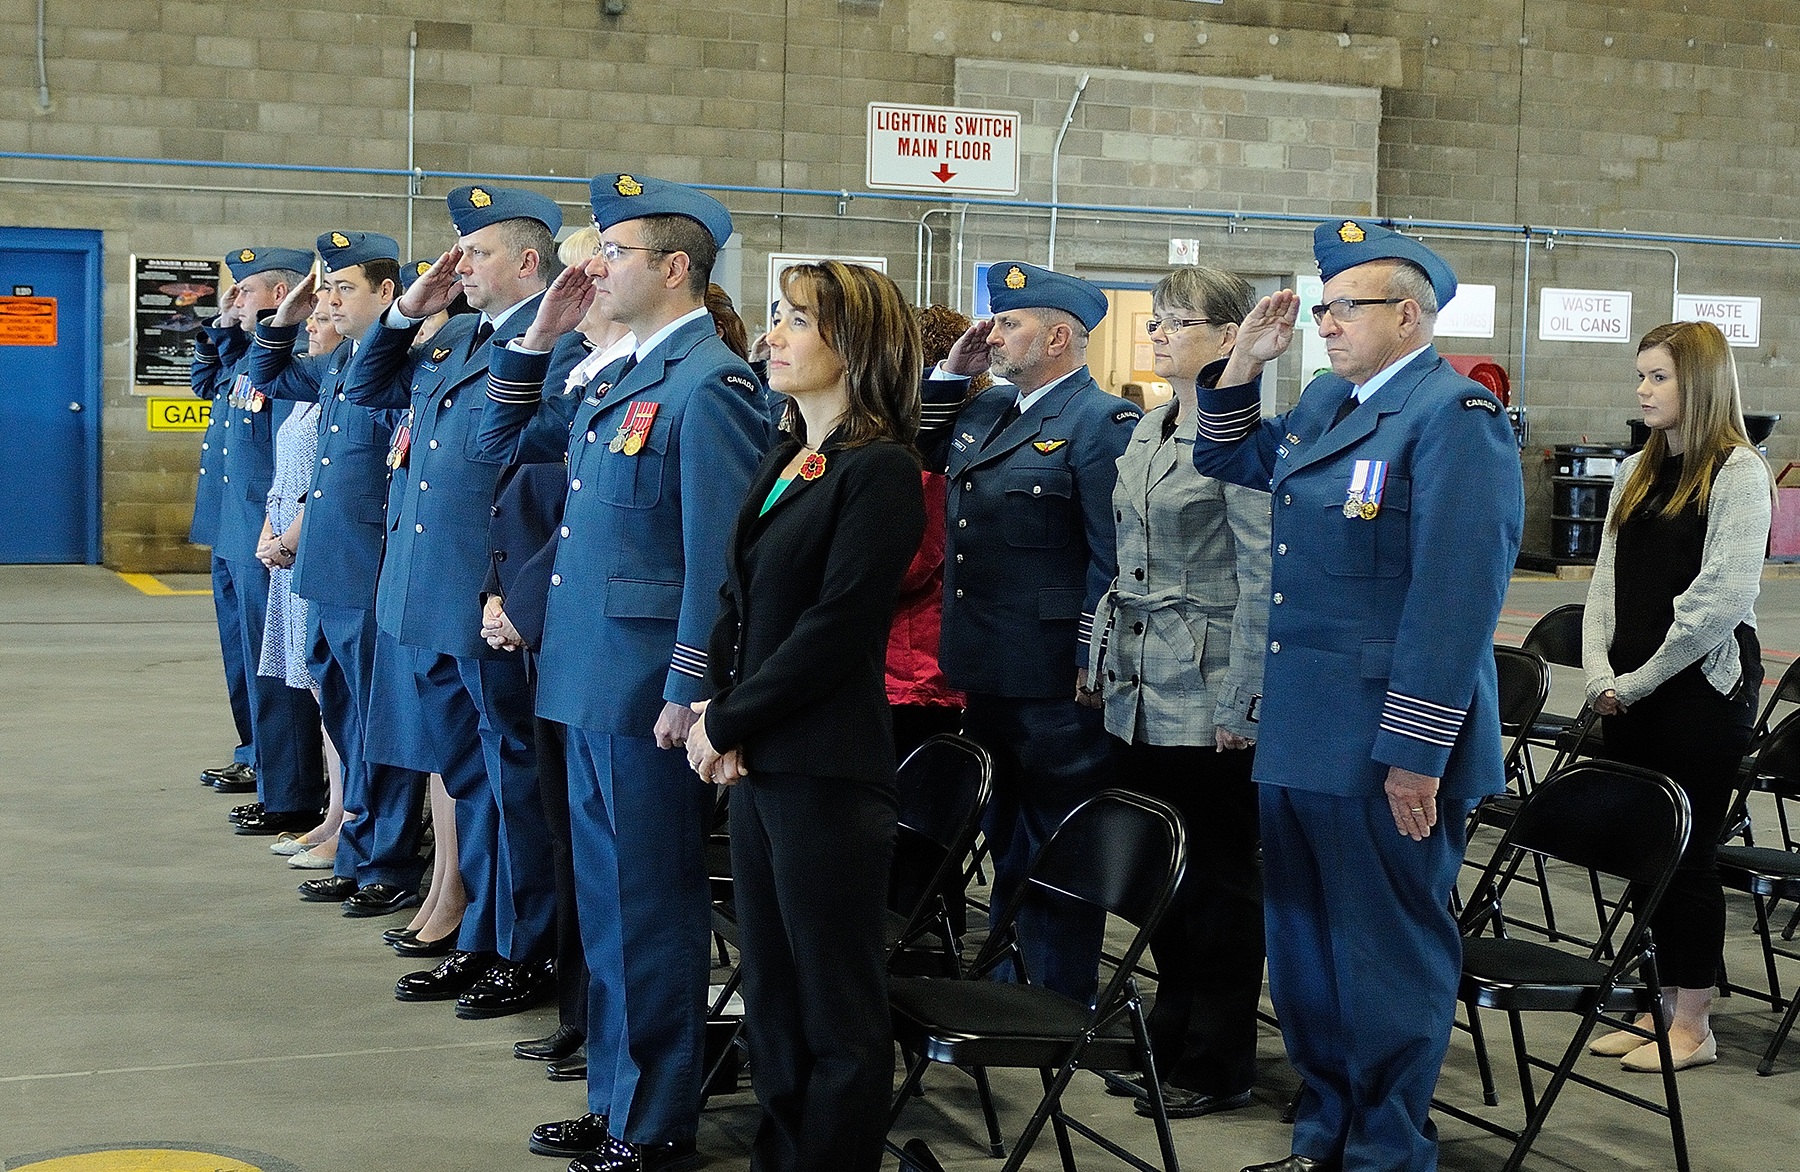 Standing with their families and friends, 5 Wing Goose Bay, Newfoundland and Labrador, personnel salute during the September 17, 2017, wing ceremony marking the 77th anniversary of the Battle of Britain. PHOTO: Master Corporal Krista Blizzard, GB2017-09-007